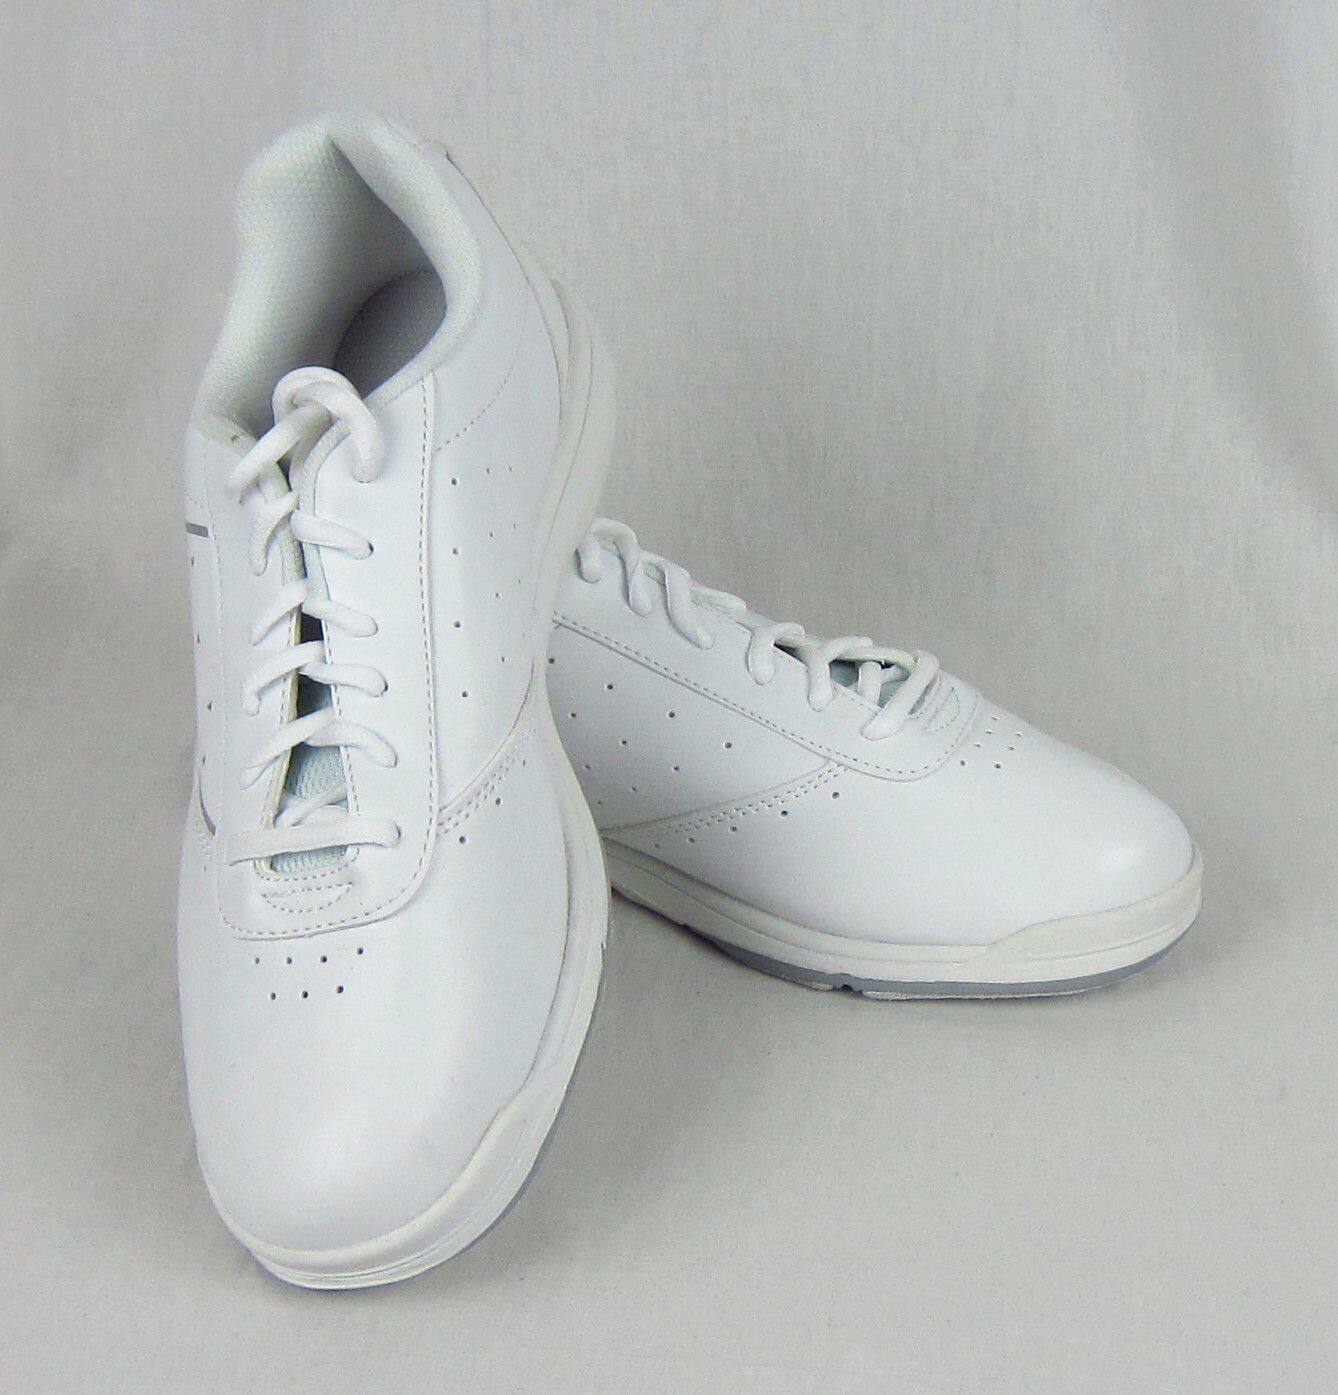 New Women's Etoncis E Series Kitty Kat Bowling Shoes White and Silver Sz US 9.5